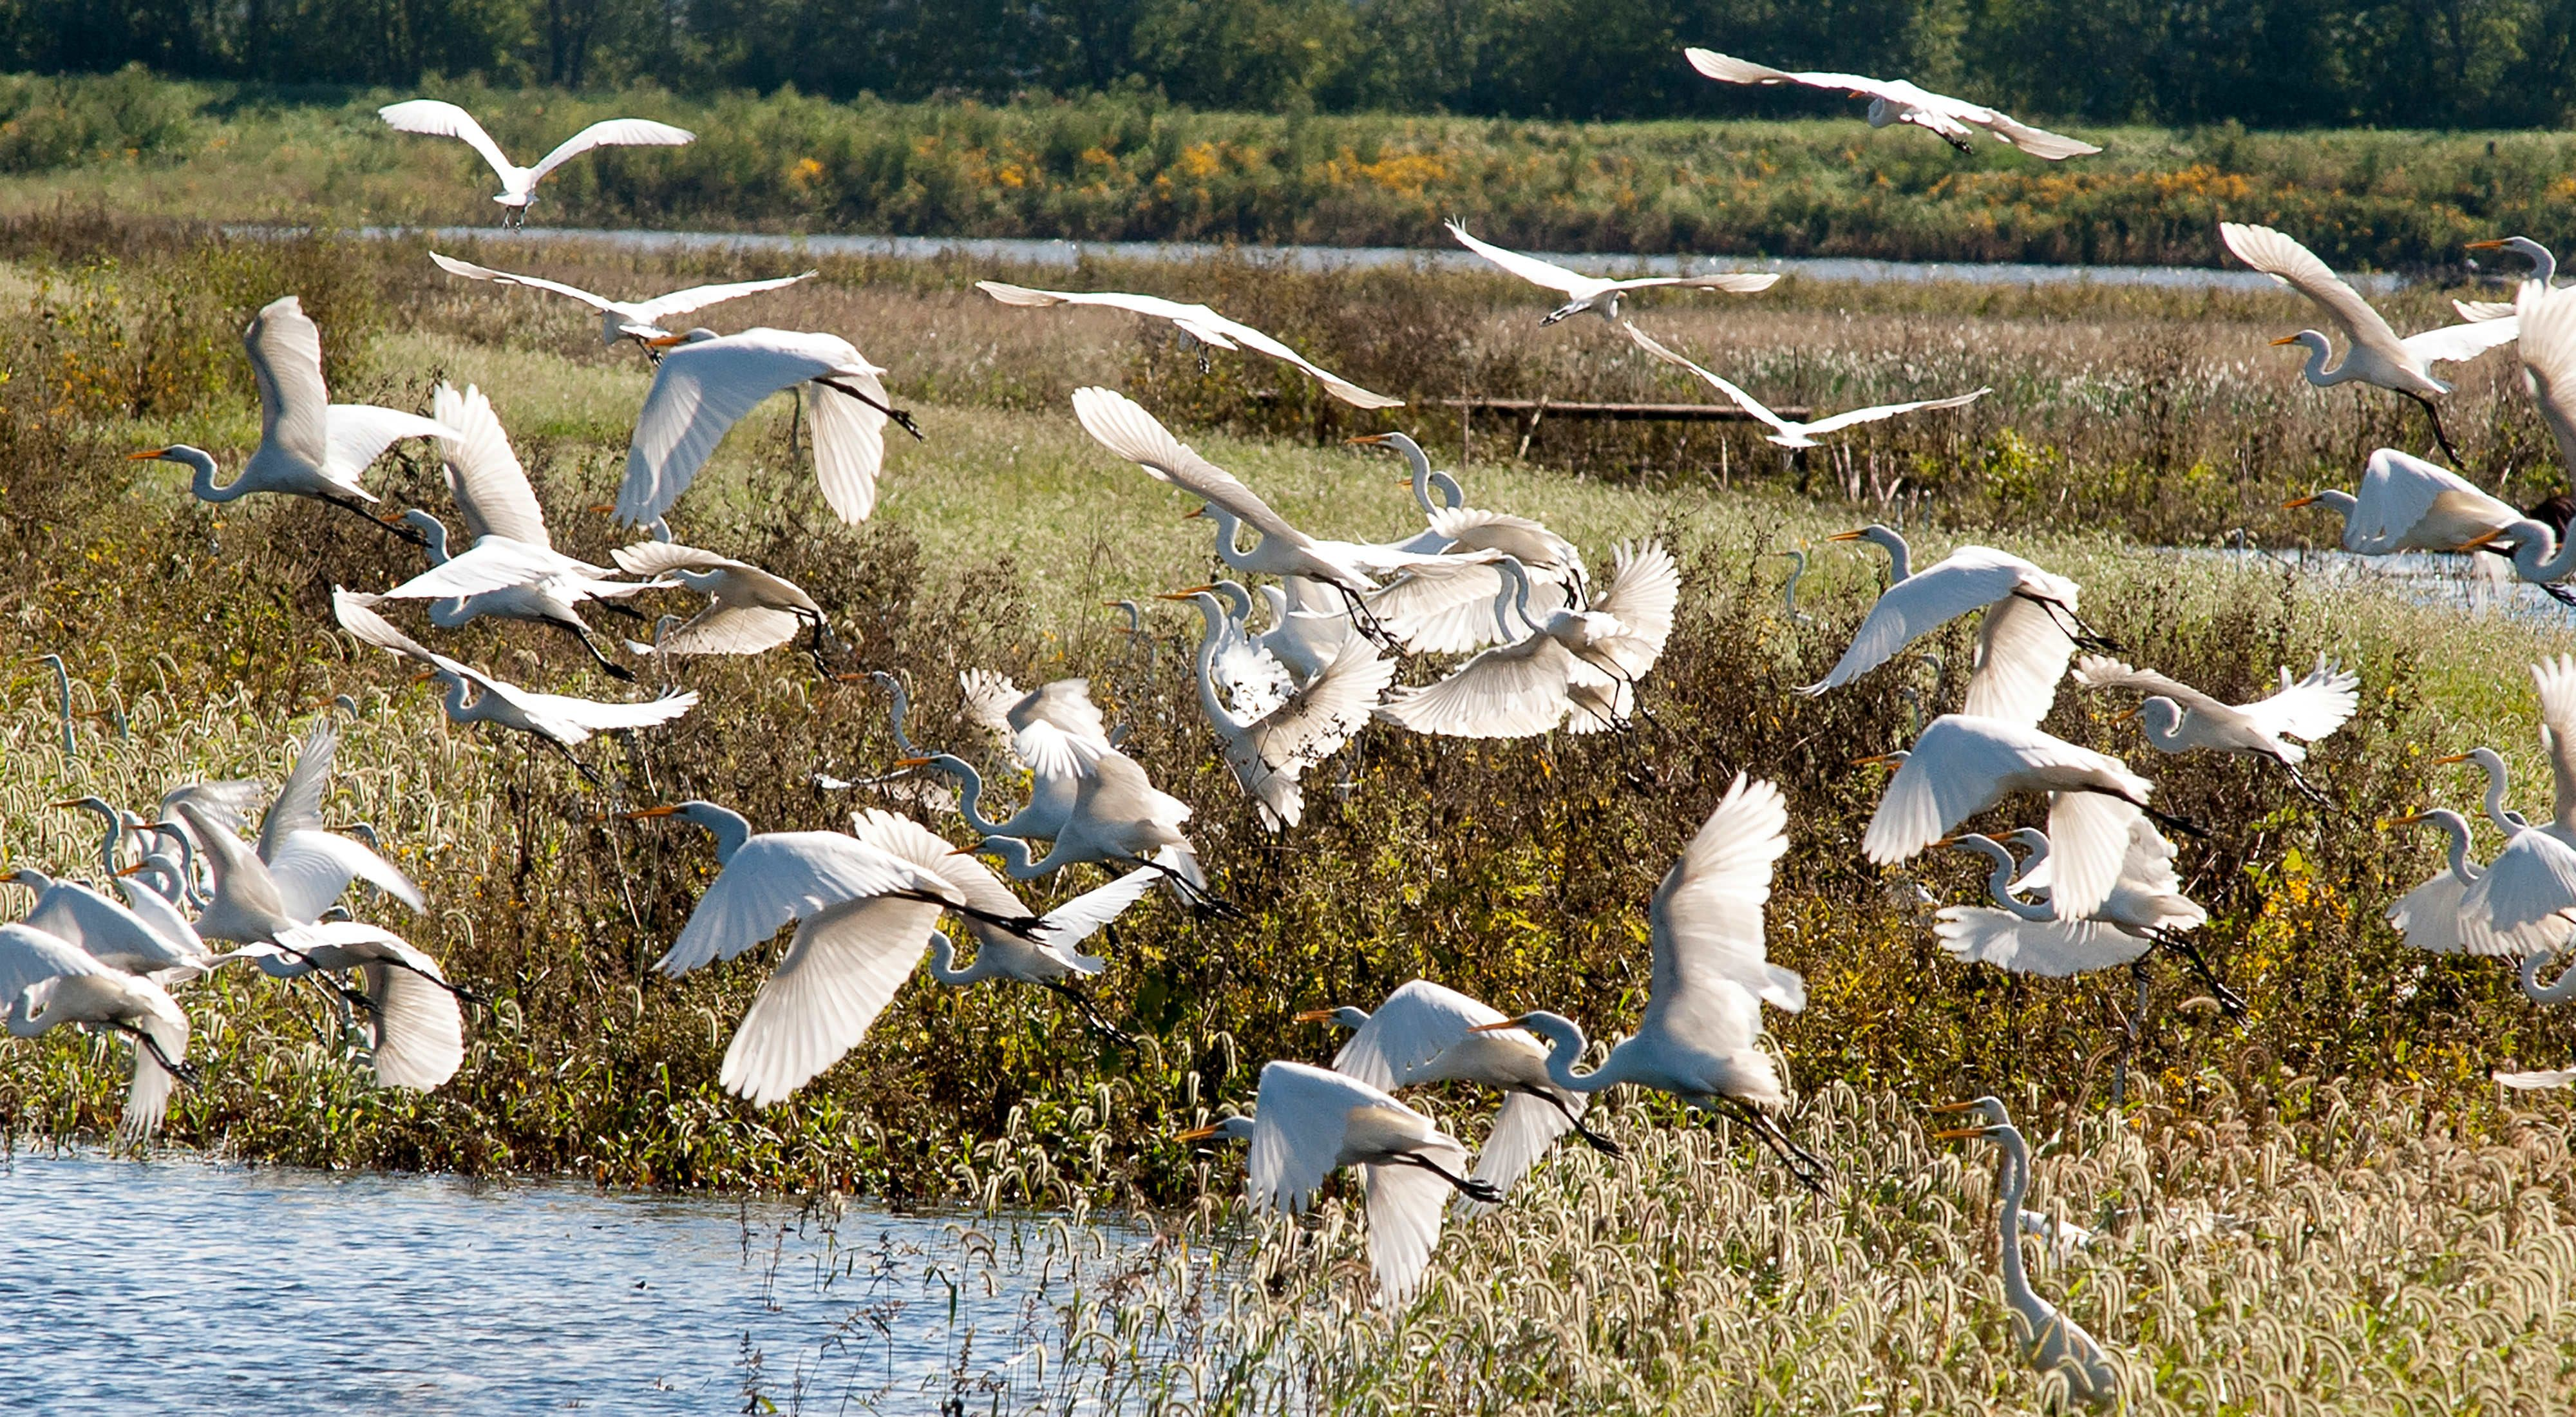 Birds take flight at The Nature Conservancy's Emiquon preserve.